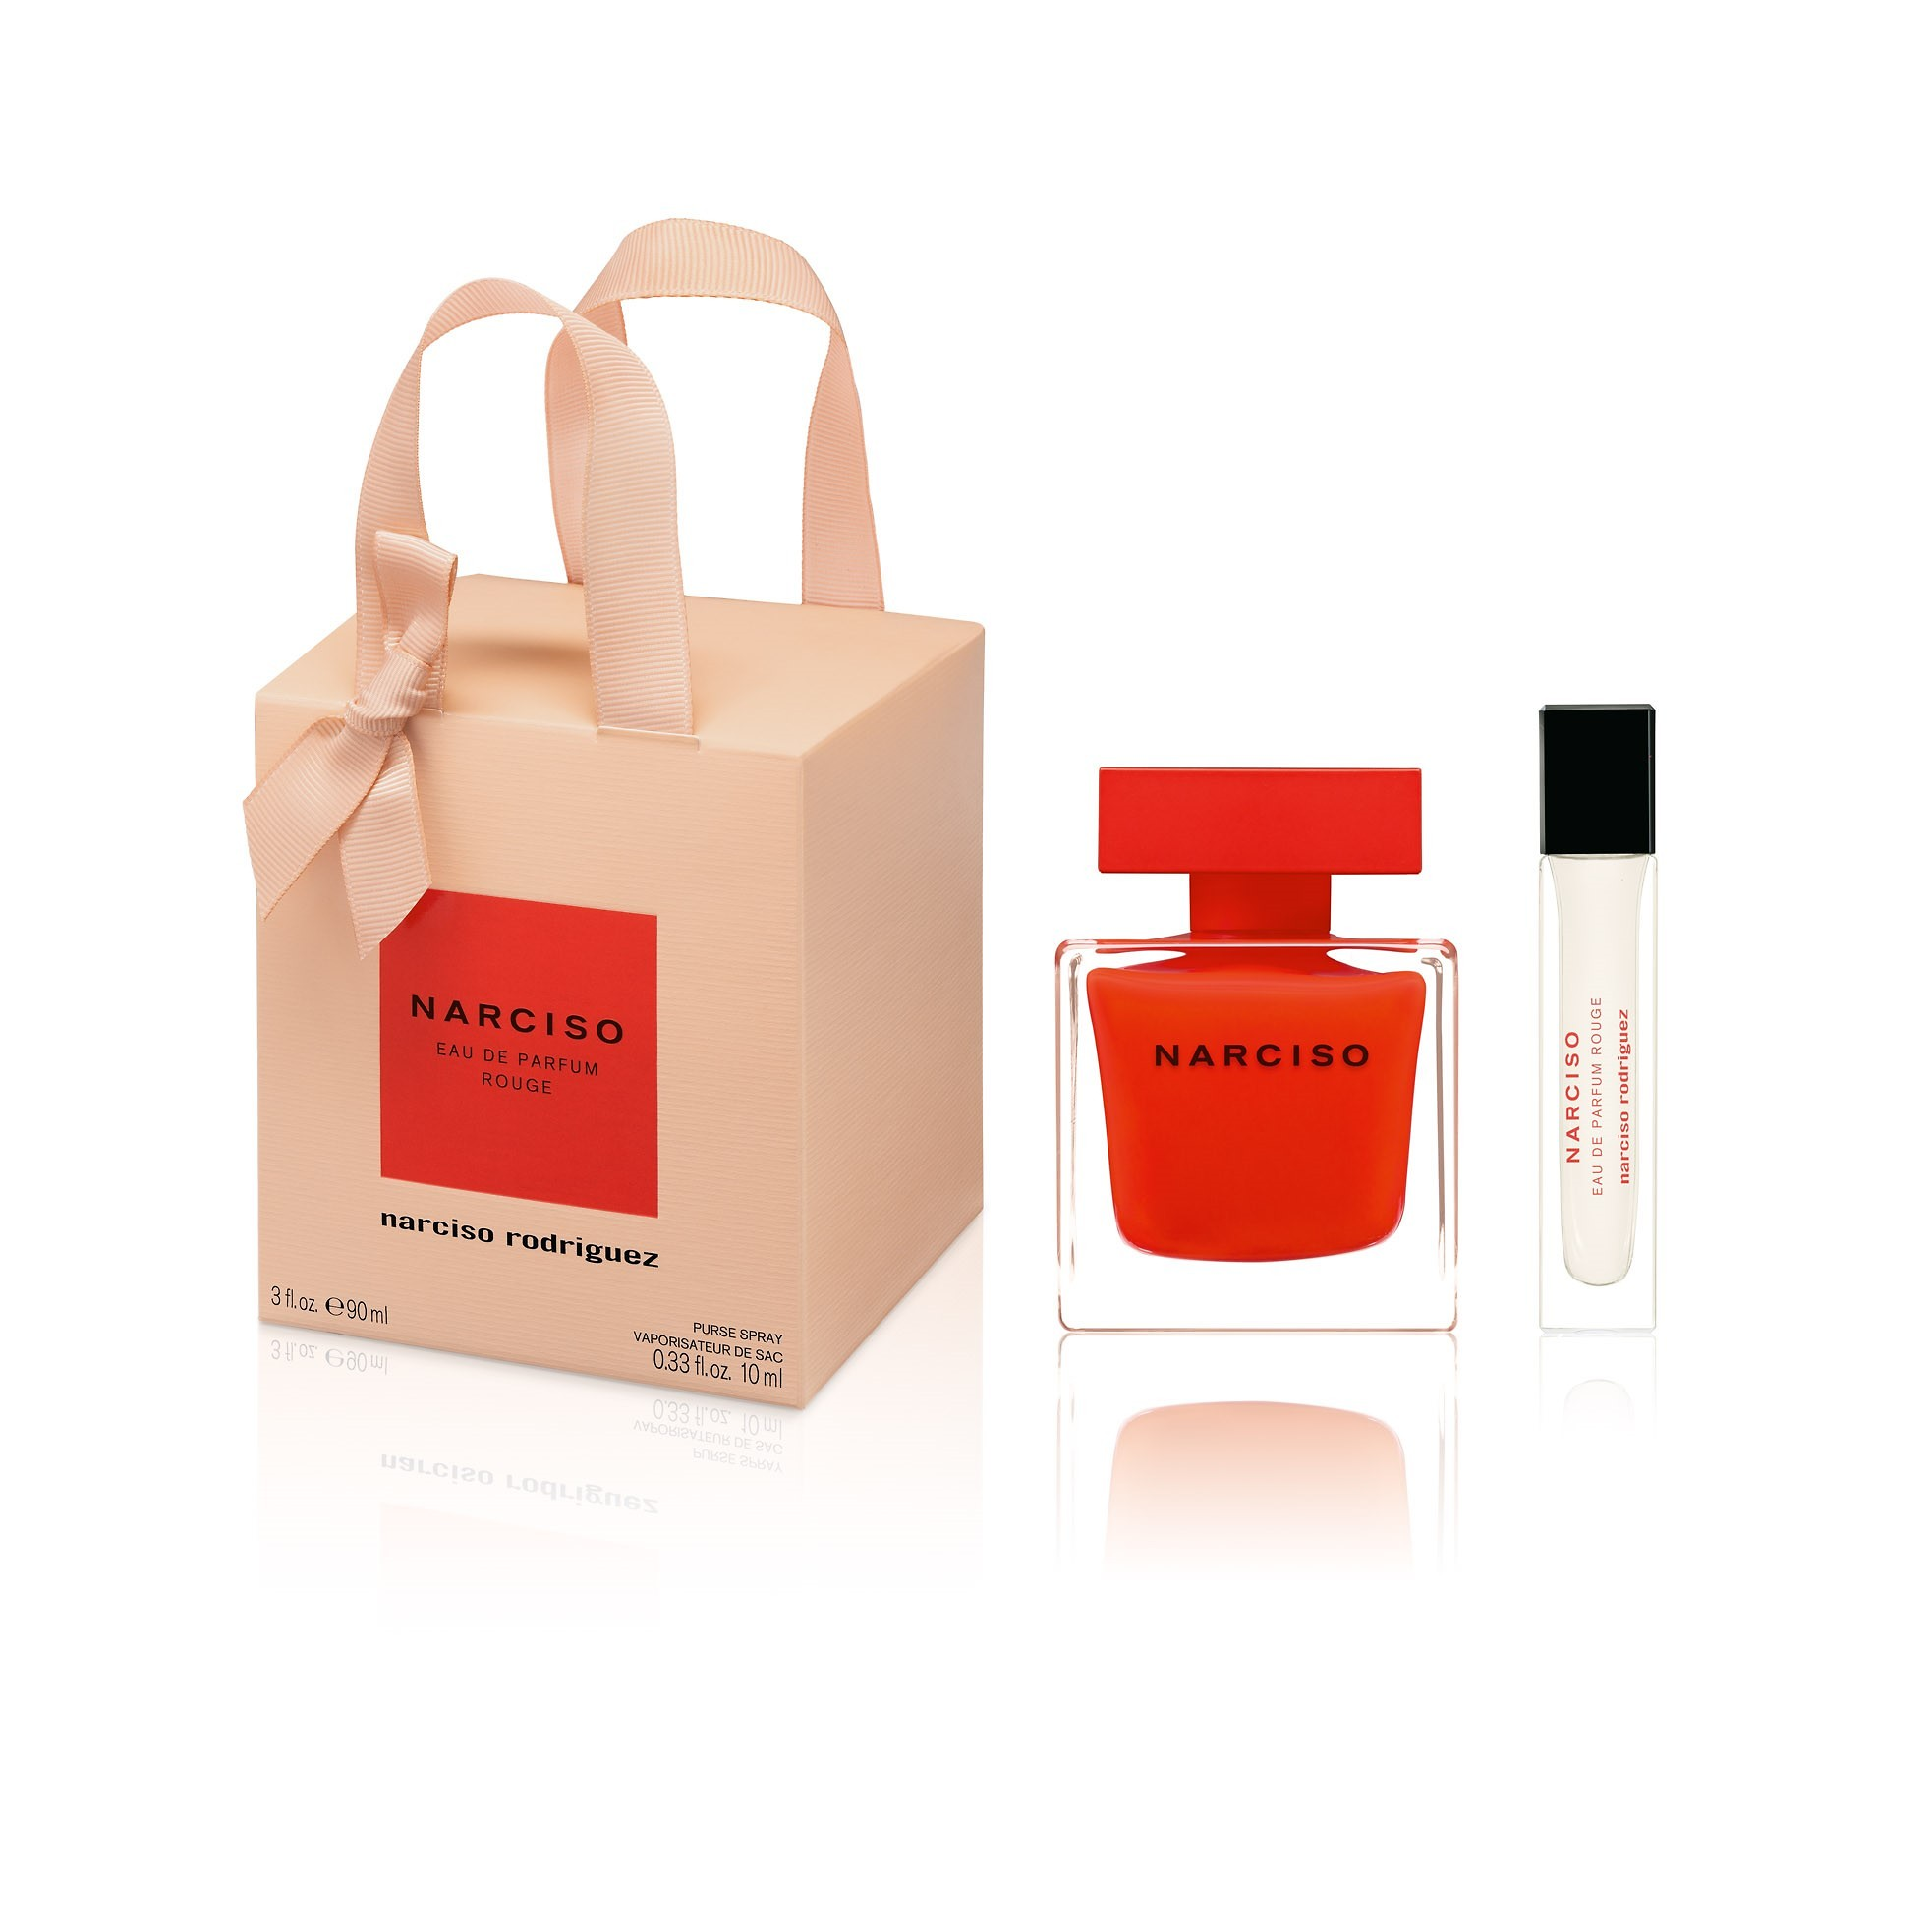 NARCISO 2020 spring pack A